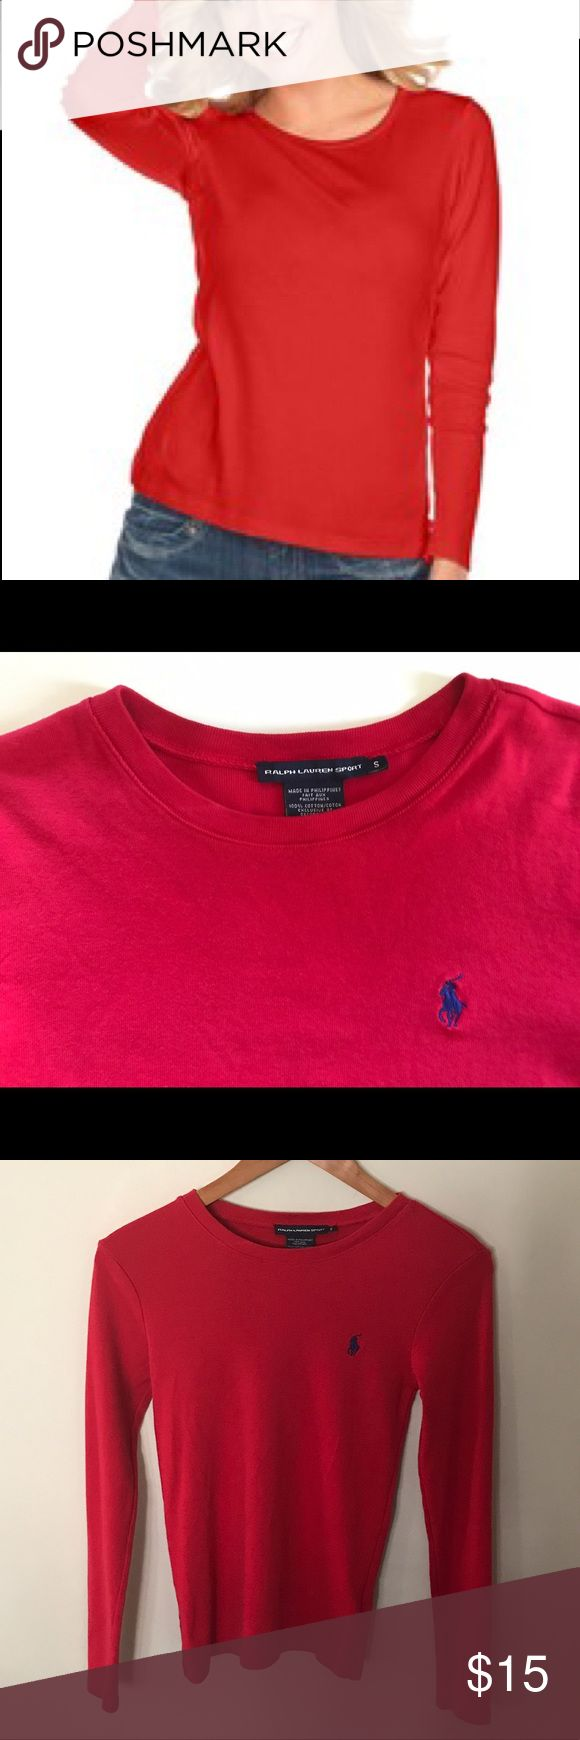 Ralph Lauren Sport Red Polo Tee, Long Sleeve Ralph Lauren Sport long sleeve polo tee. Great RL quality, beautiful RL red with RL navy blue polo logo on front. Size S & runs on the small side so if you are XS-S vs S-M should fit you well. 💯% cotton. Excellent condition, no flaws, like new. I launder all clothes before I package for you & package to protect your purchase. Shipping is same or next day. Ralph Lauren Tops Tees - Long Sleeve